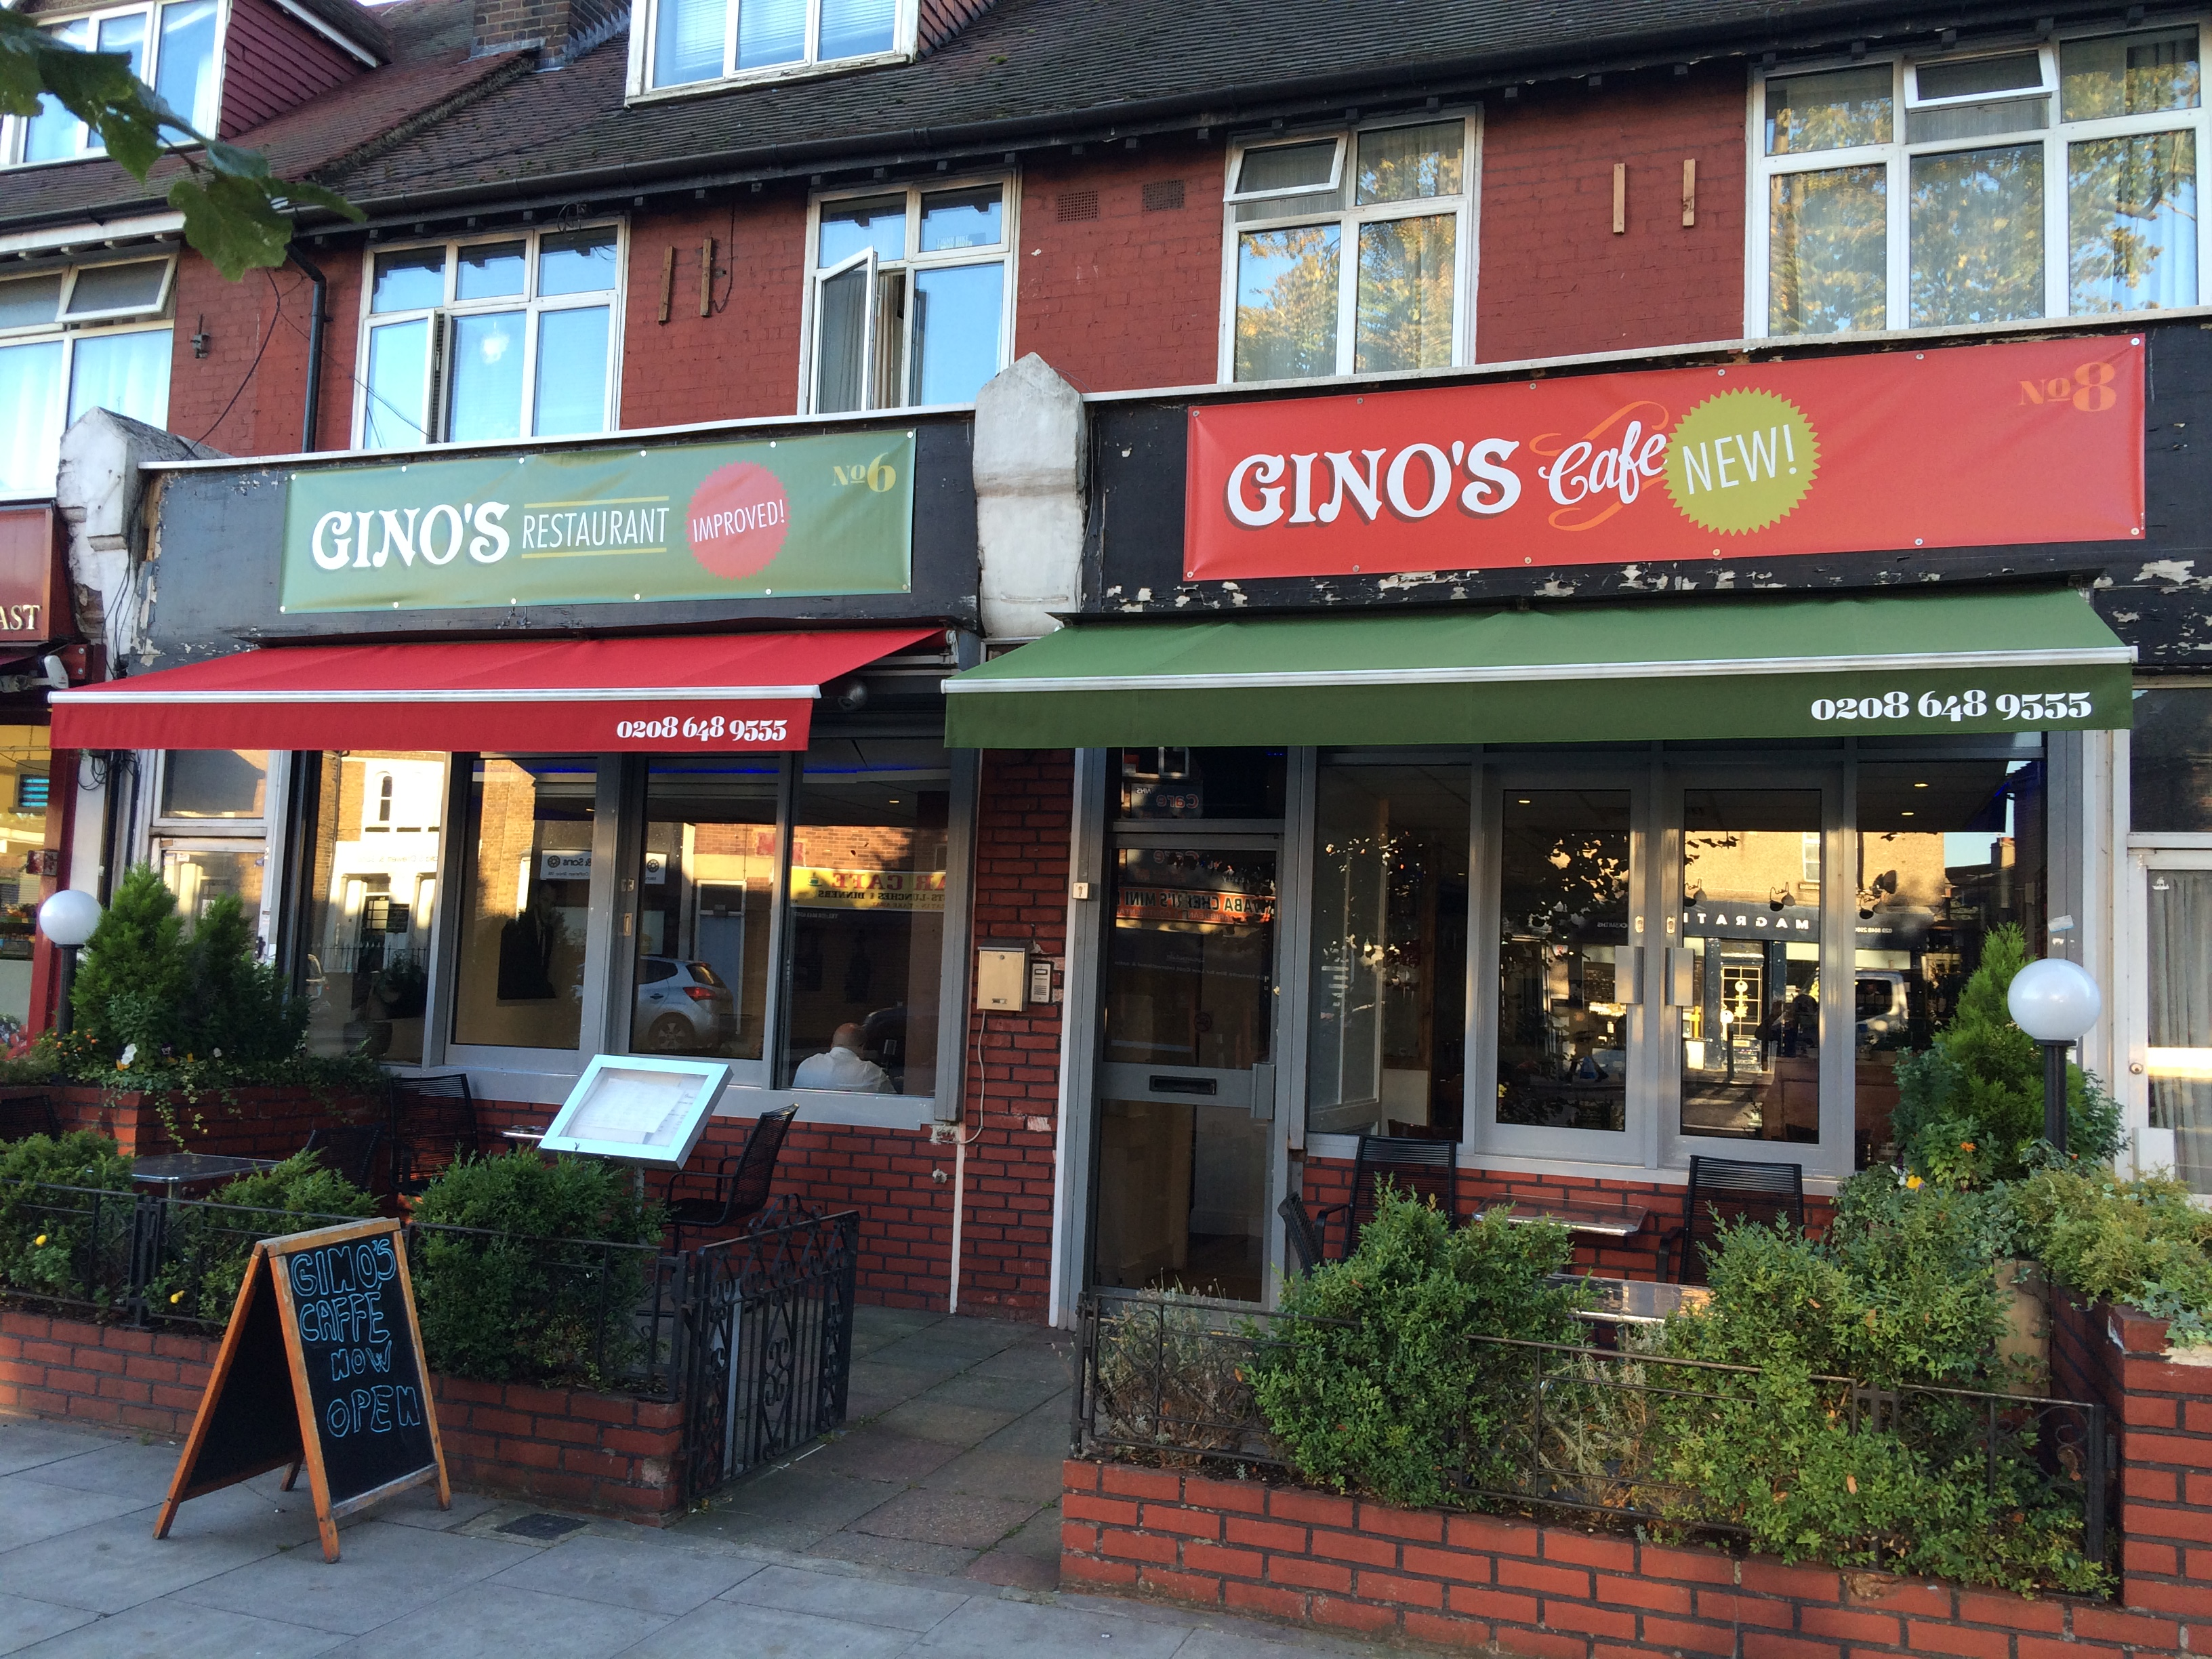 Gino's restaurant and cafe